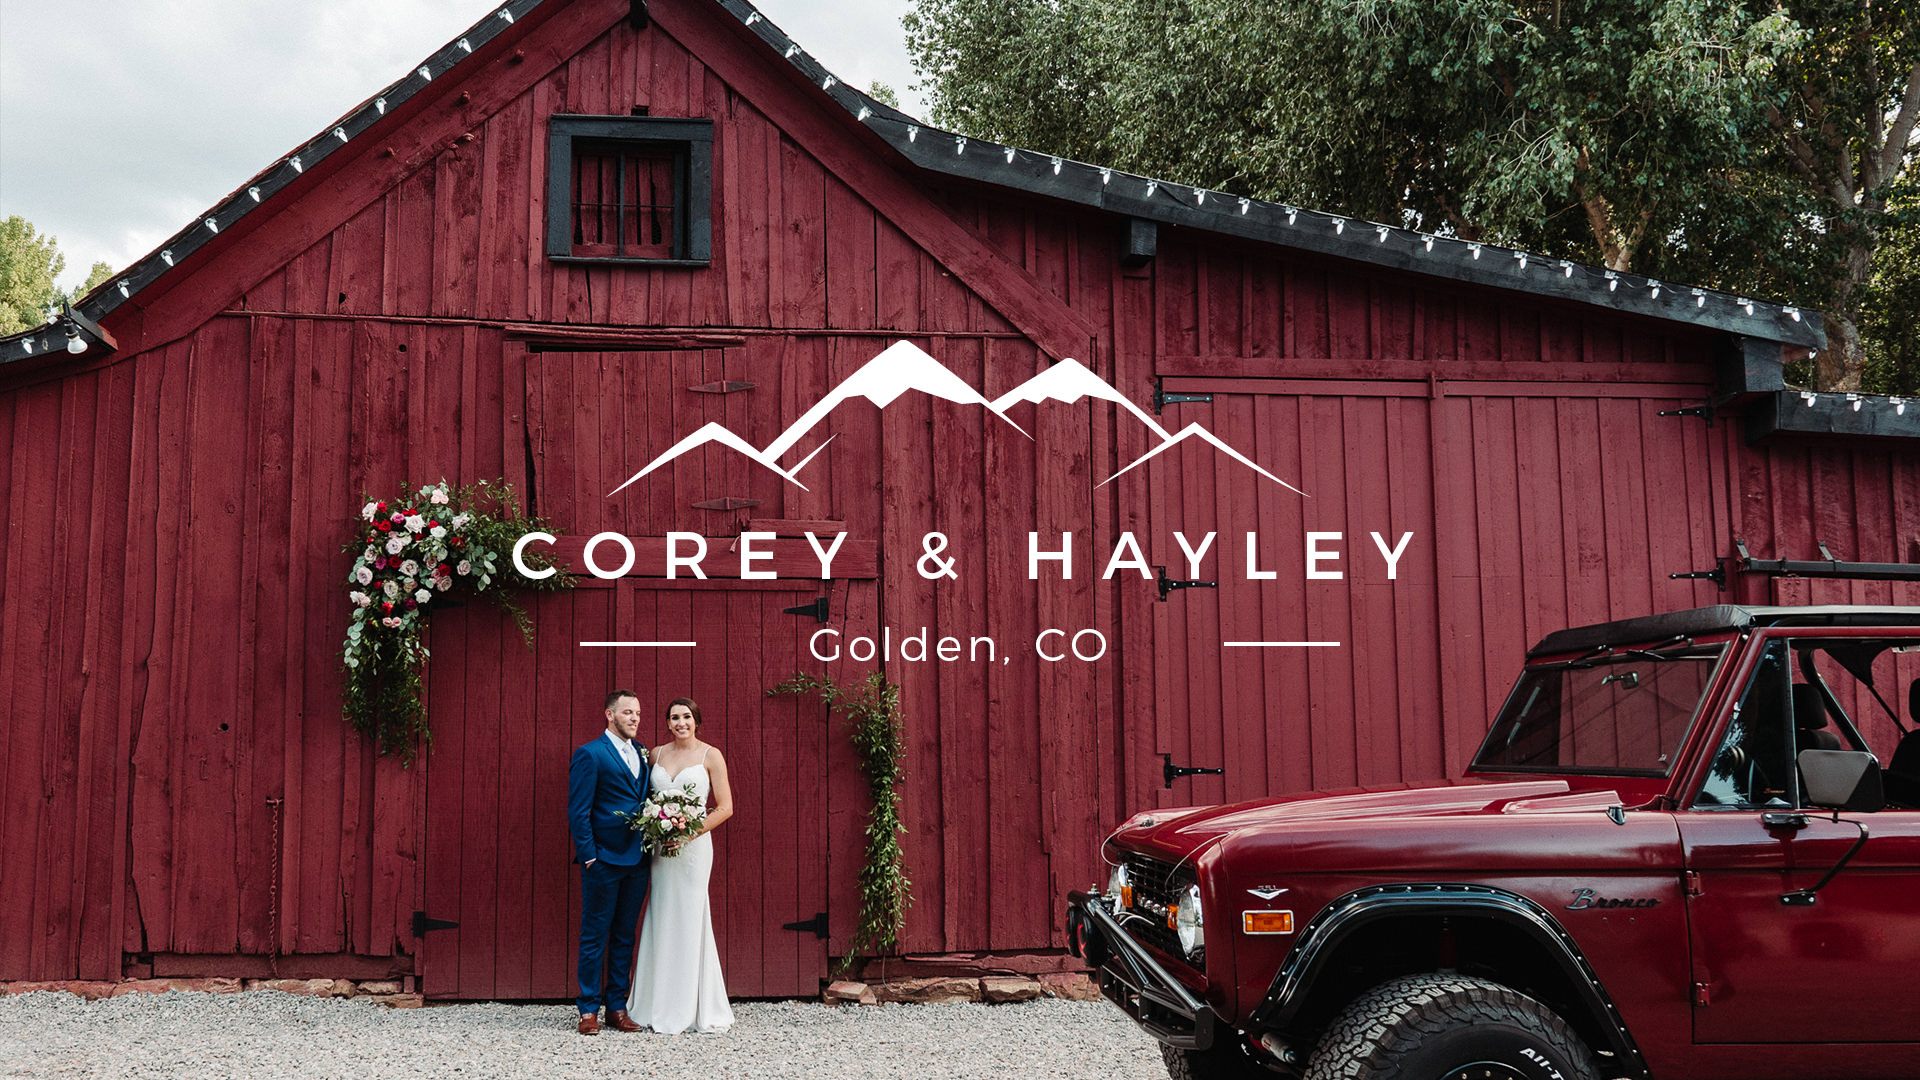 Hayley + Corey | Golden, Colorado | Home